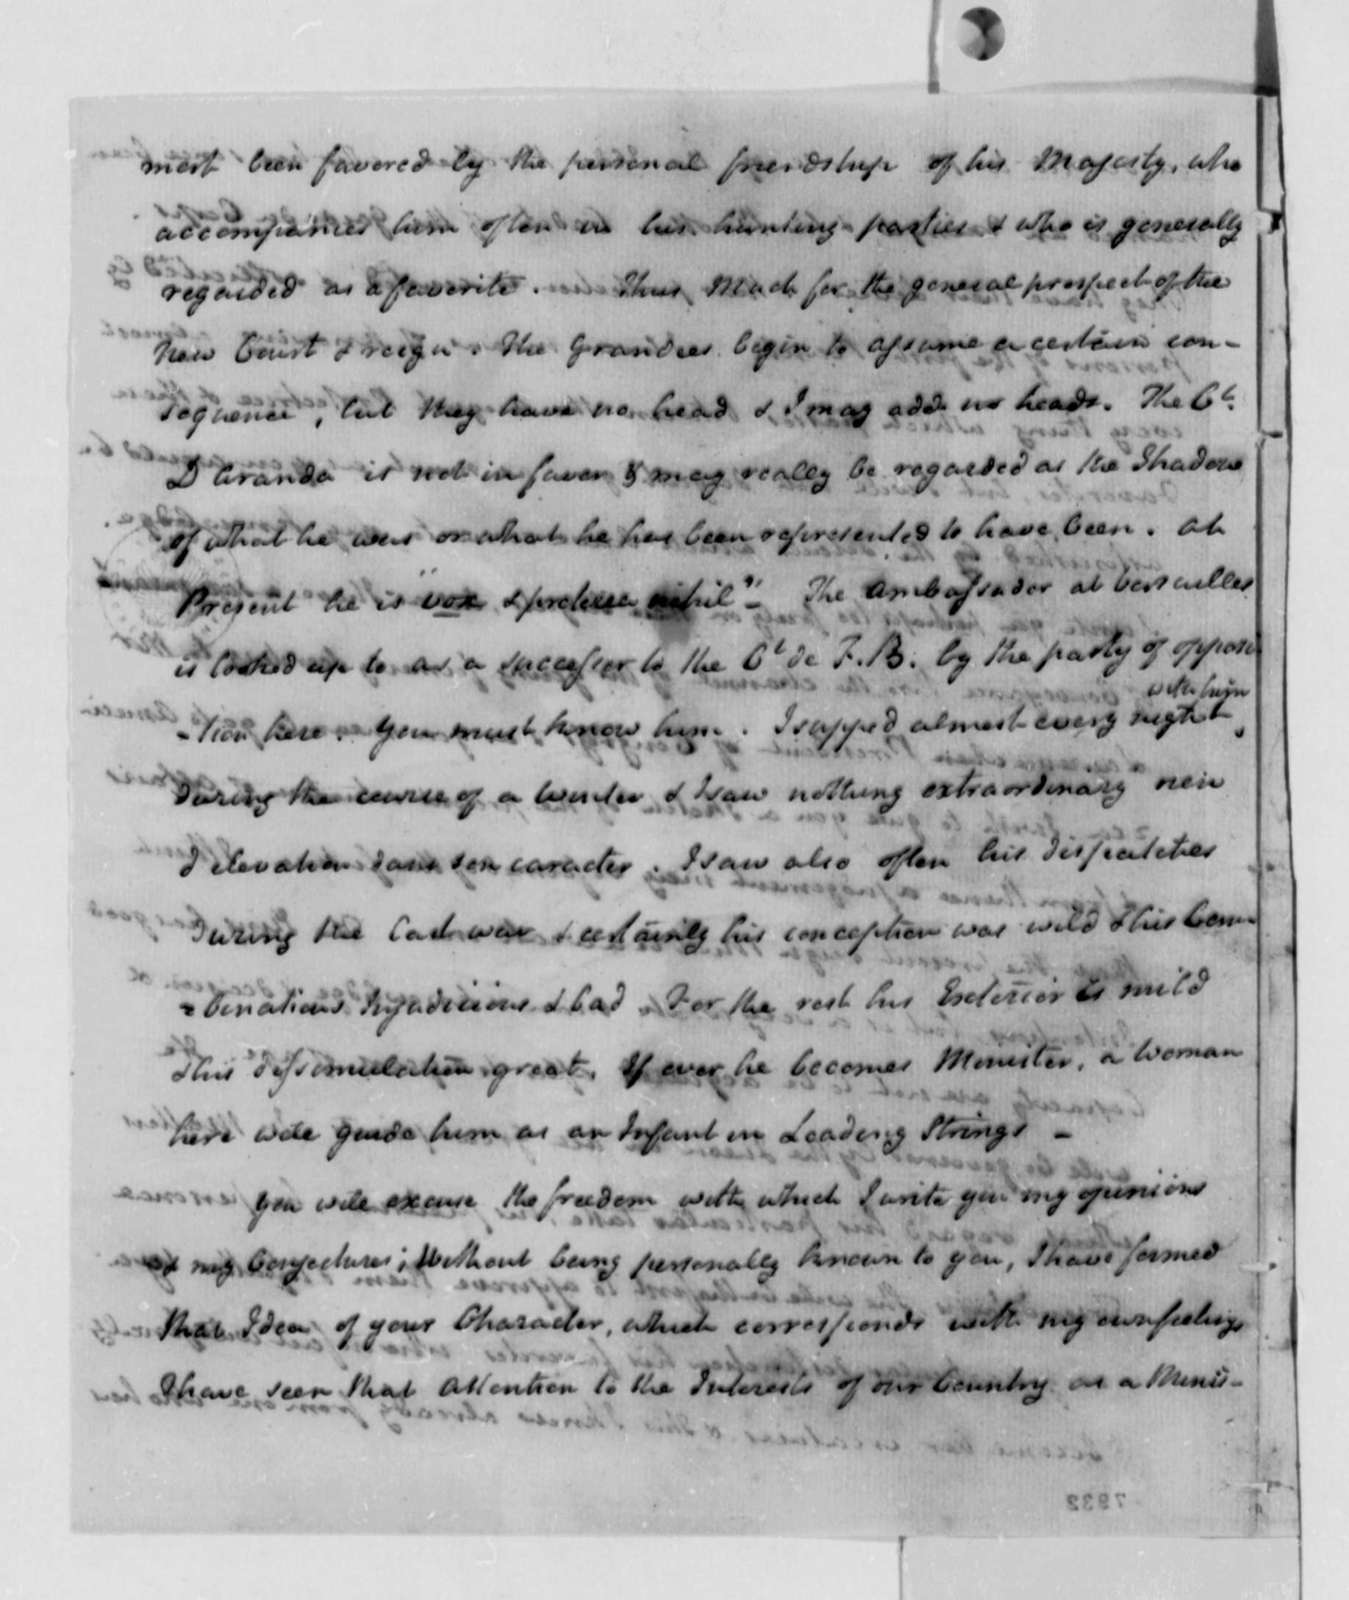 William Carmichael to Thomas Jefferson, January 26, 1789, Partially in Code